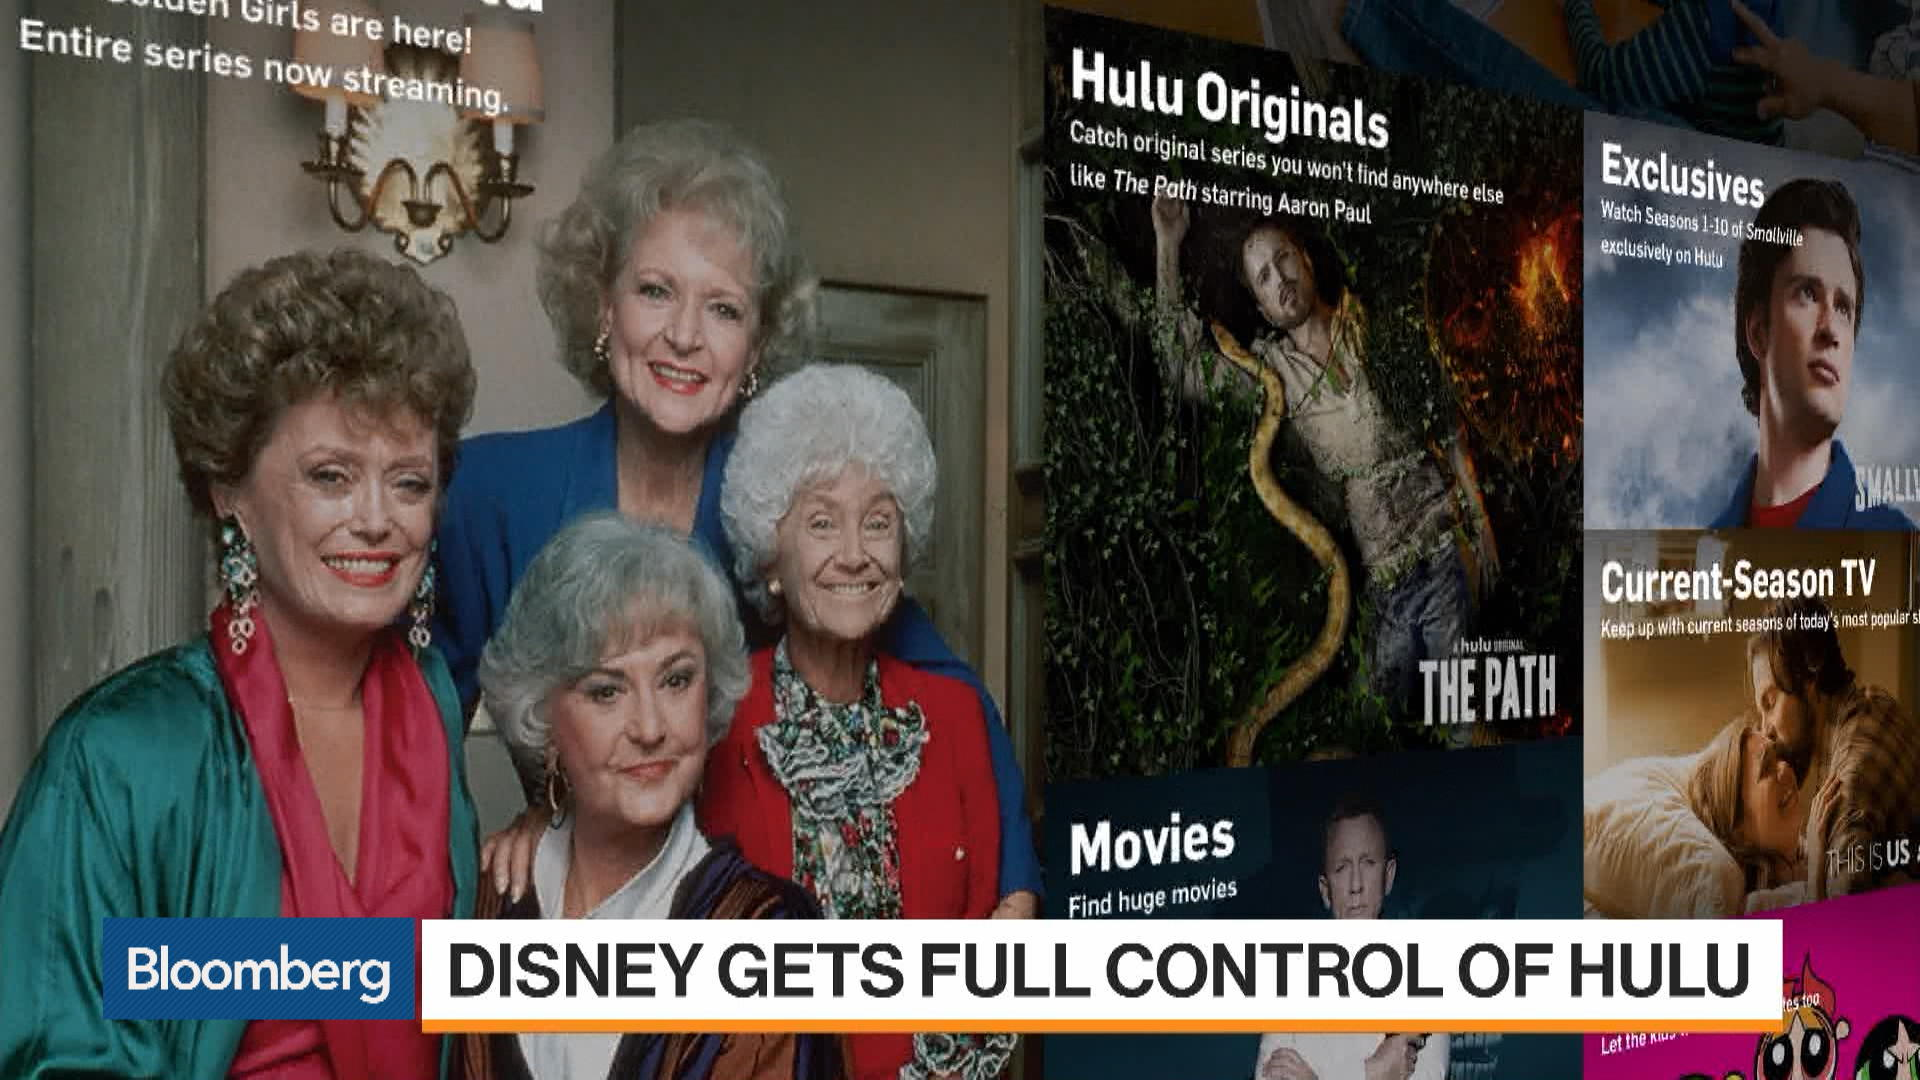 Disney (DIS) Assumes Full Control of Hulu From Comcast